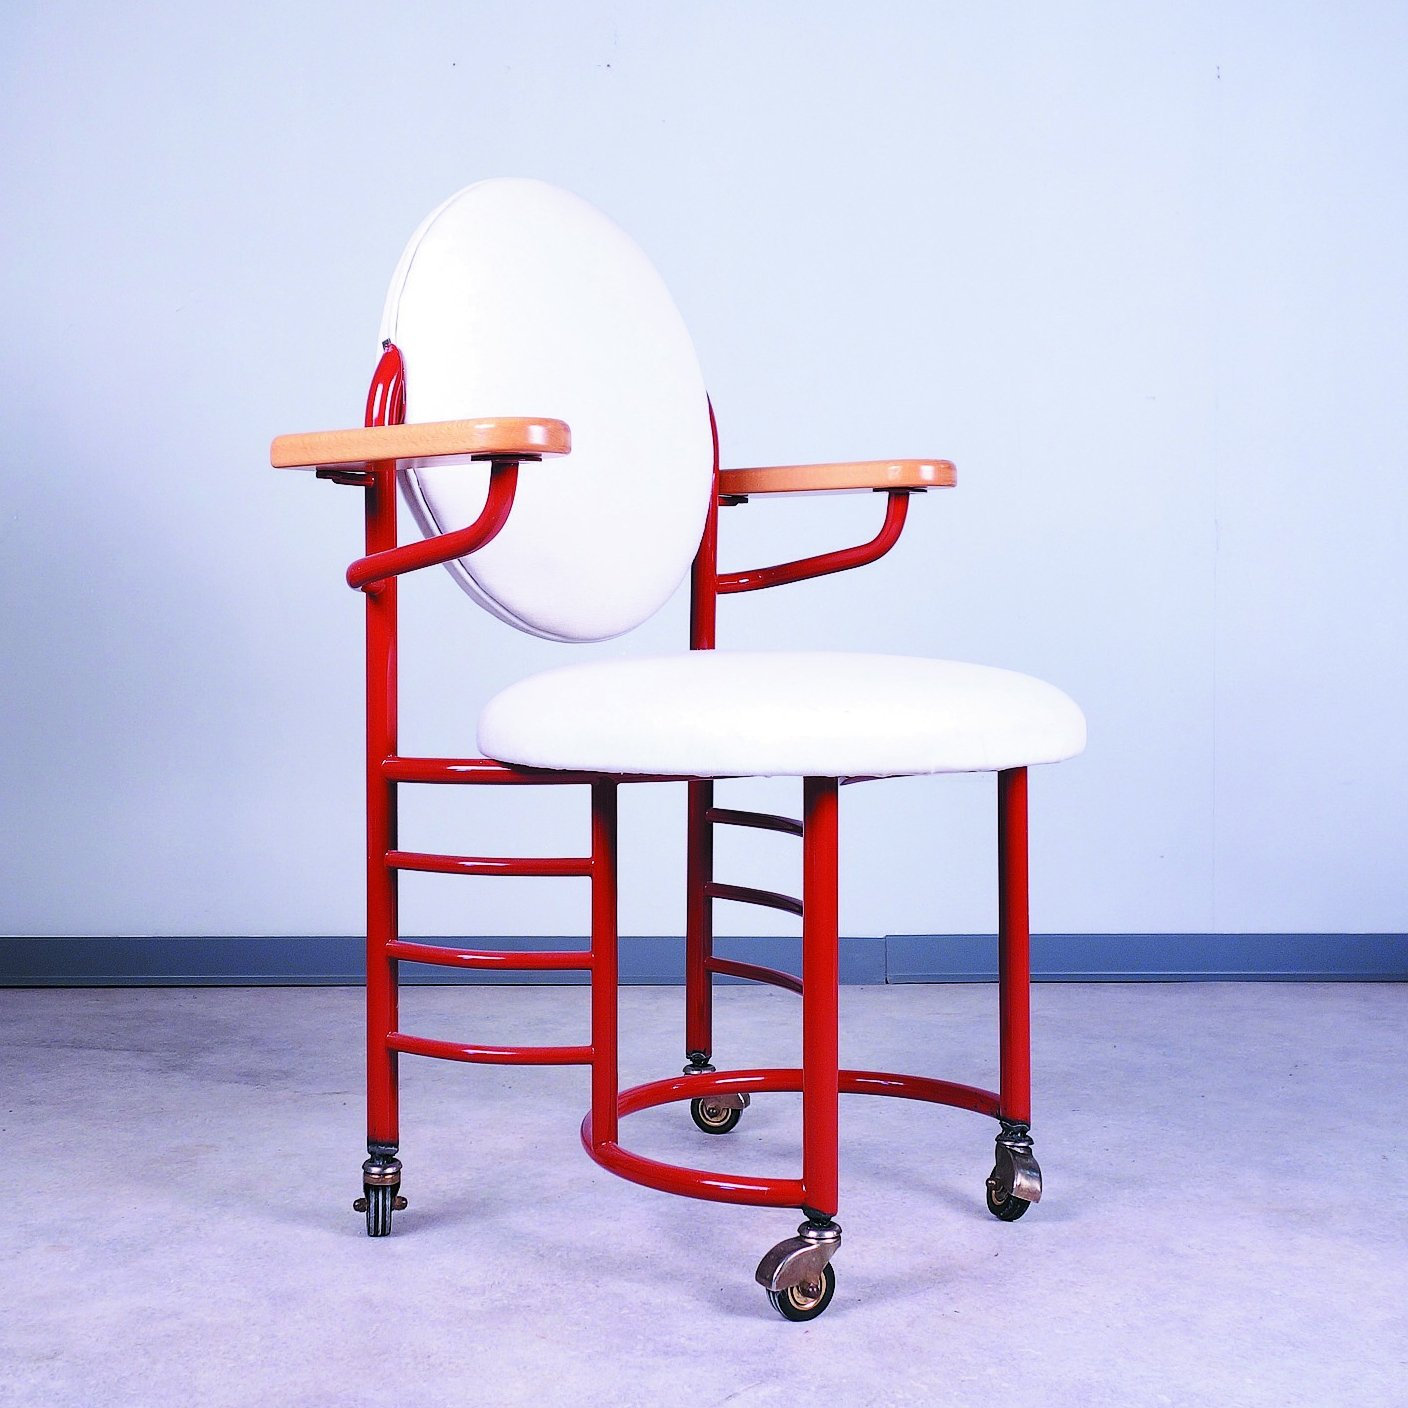 Johnson Wax Office Chair By Frank Lloyd Wright For Cassina